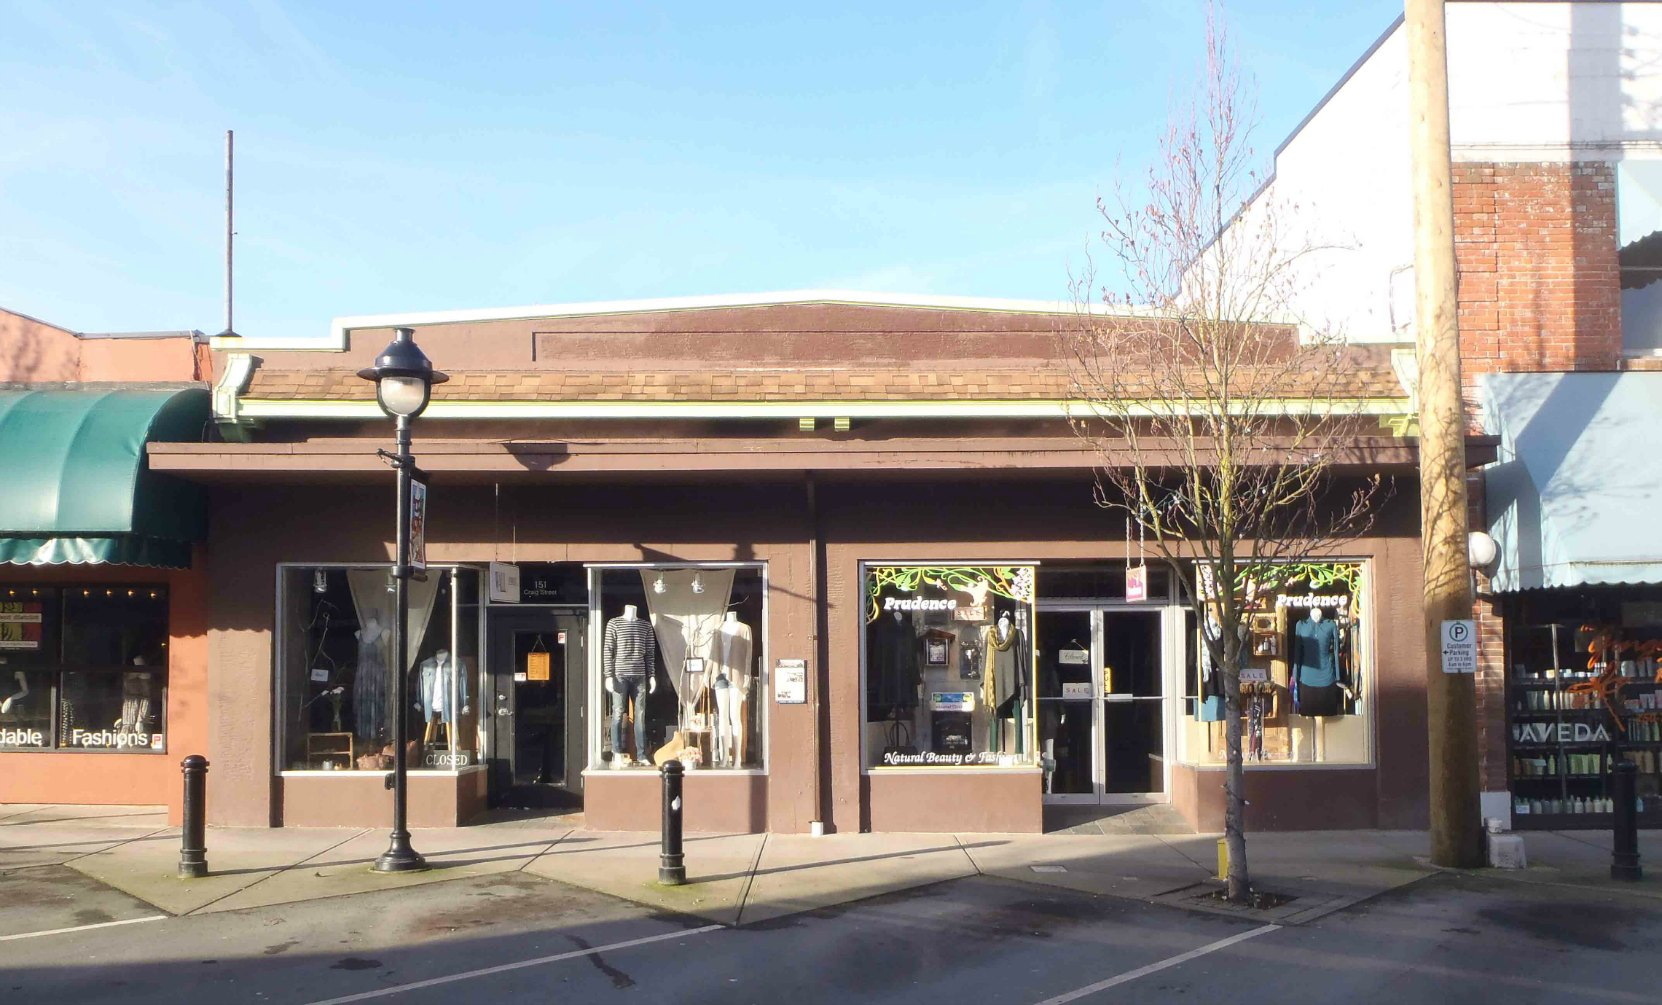 151-155 Craig Street is now two retail stores but it was built in 1929 by architect Douglas james for Hugh George Savage's Cowichan Leader newspaper.